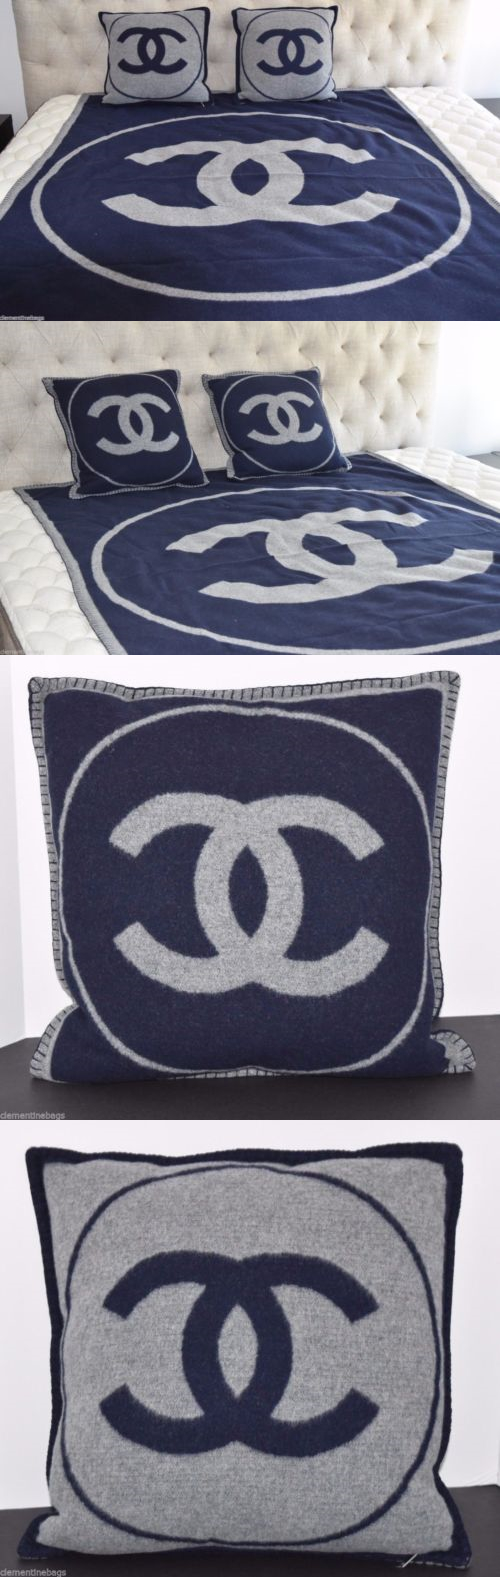 Blue decorative bed pillows - Decorative Bed Pillows 115630 Chanel Blue And Gray Blanket And Pillow Set Logo Wool Cashmere